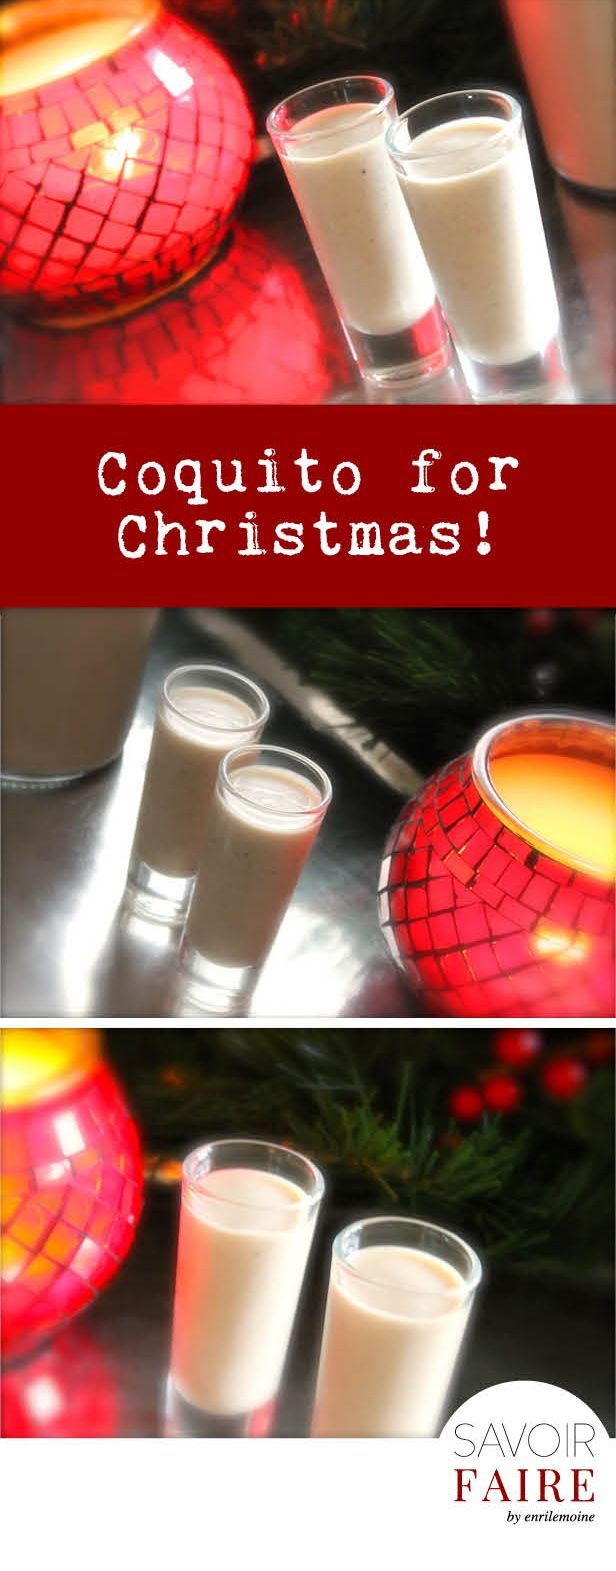 Coquito is to Puerto Ricans what ponche is to Venezuelans and eggnog is to Americans: a concoction made of milk, eggs, rum -of course- and spices with the delicious addition of coconut cream. I hope you like ti!